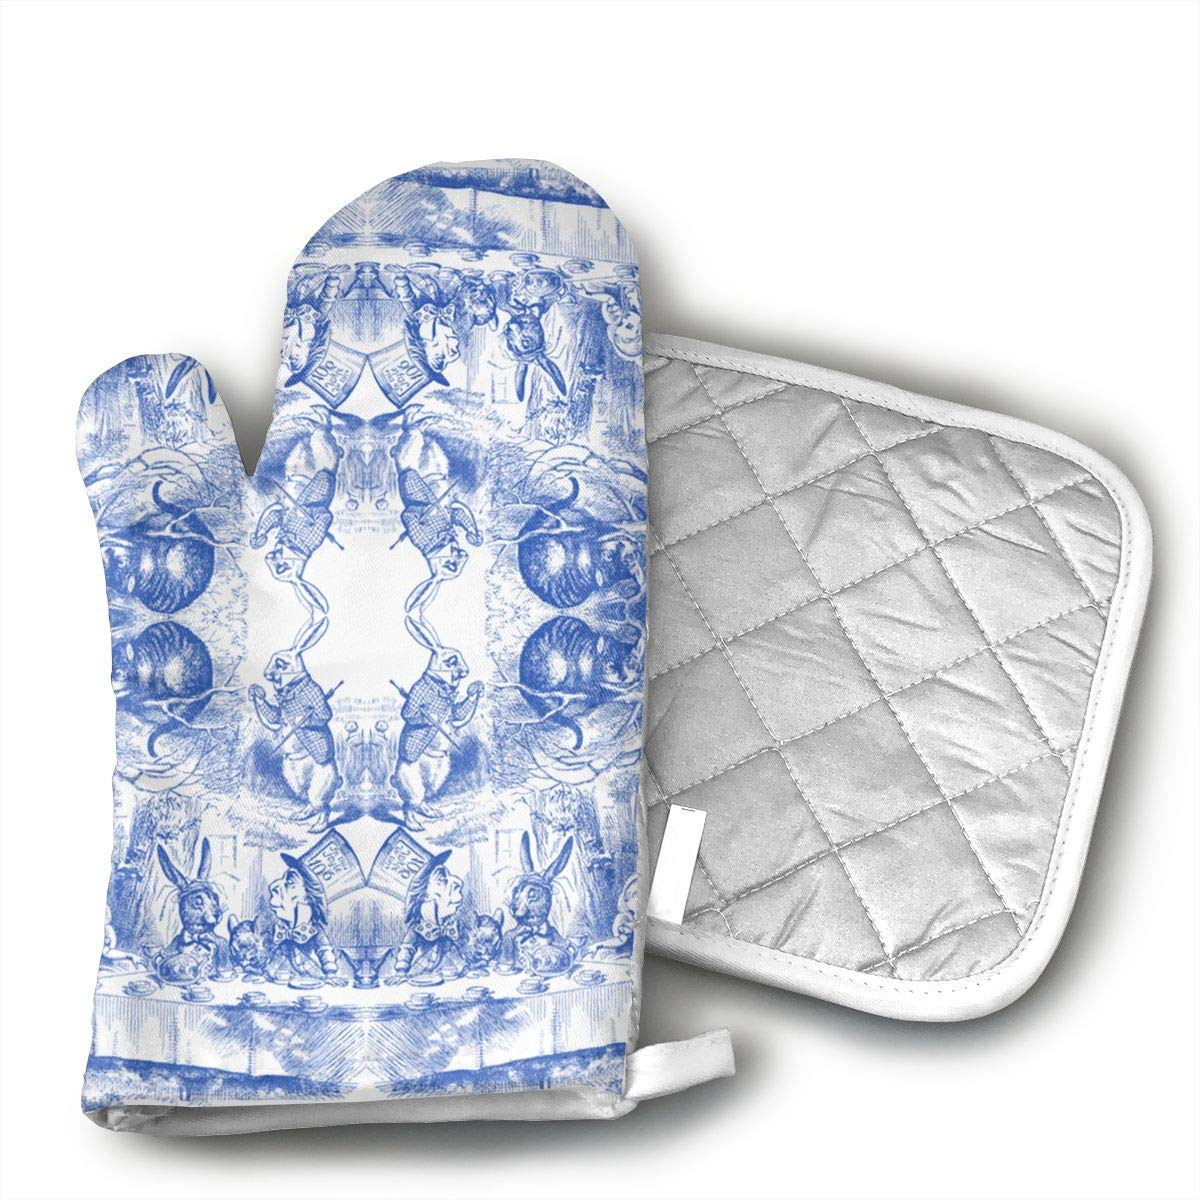 HiHMJ Alice in Wonderland Microwave Oven Gloves,Cotton Oven Gloves Heat Resistant Microwave Oven Kitchen Gloves